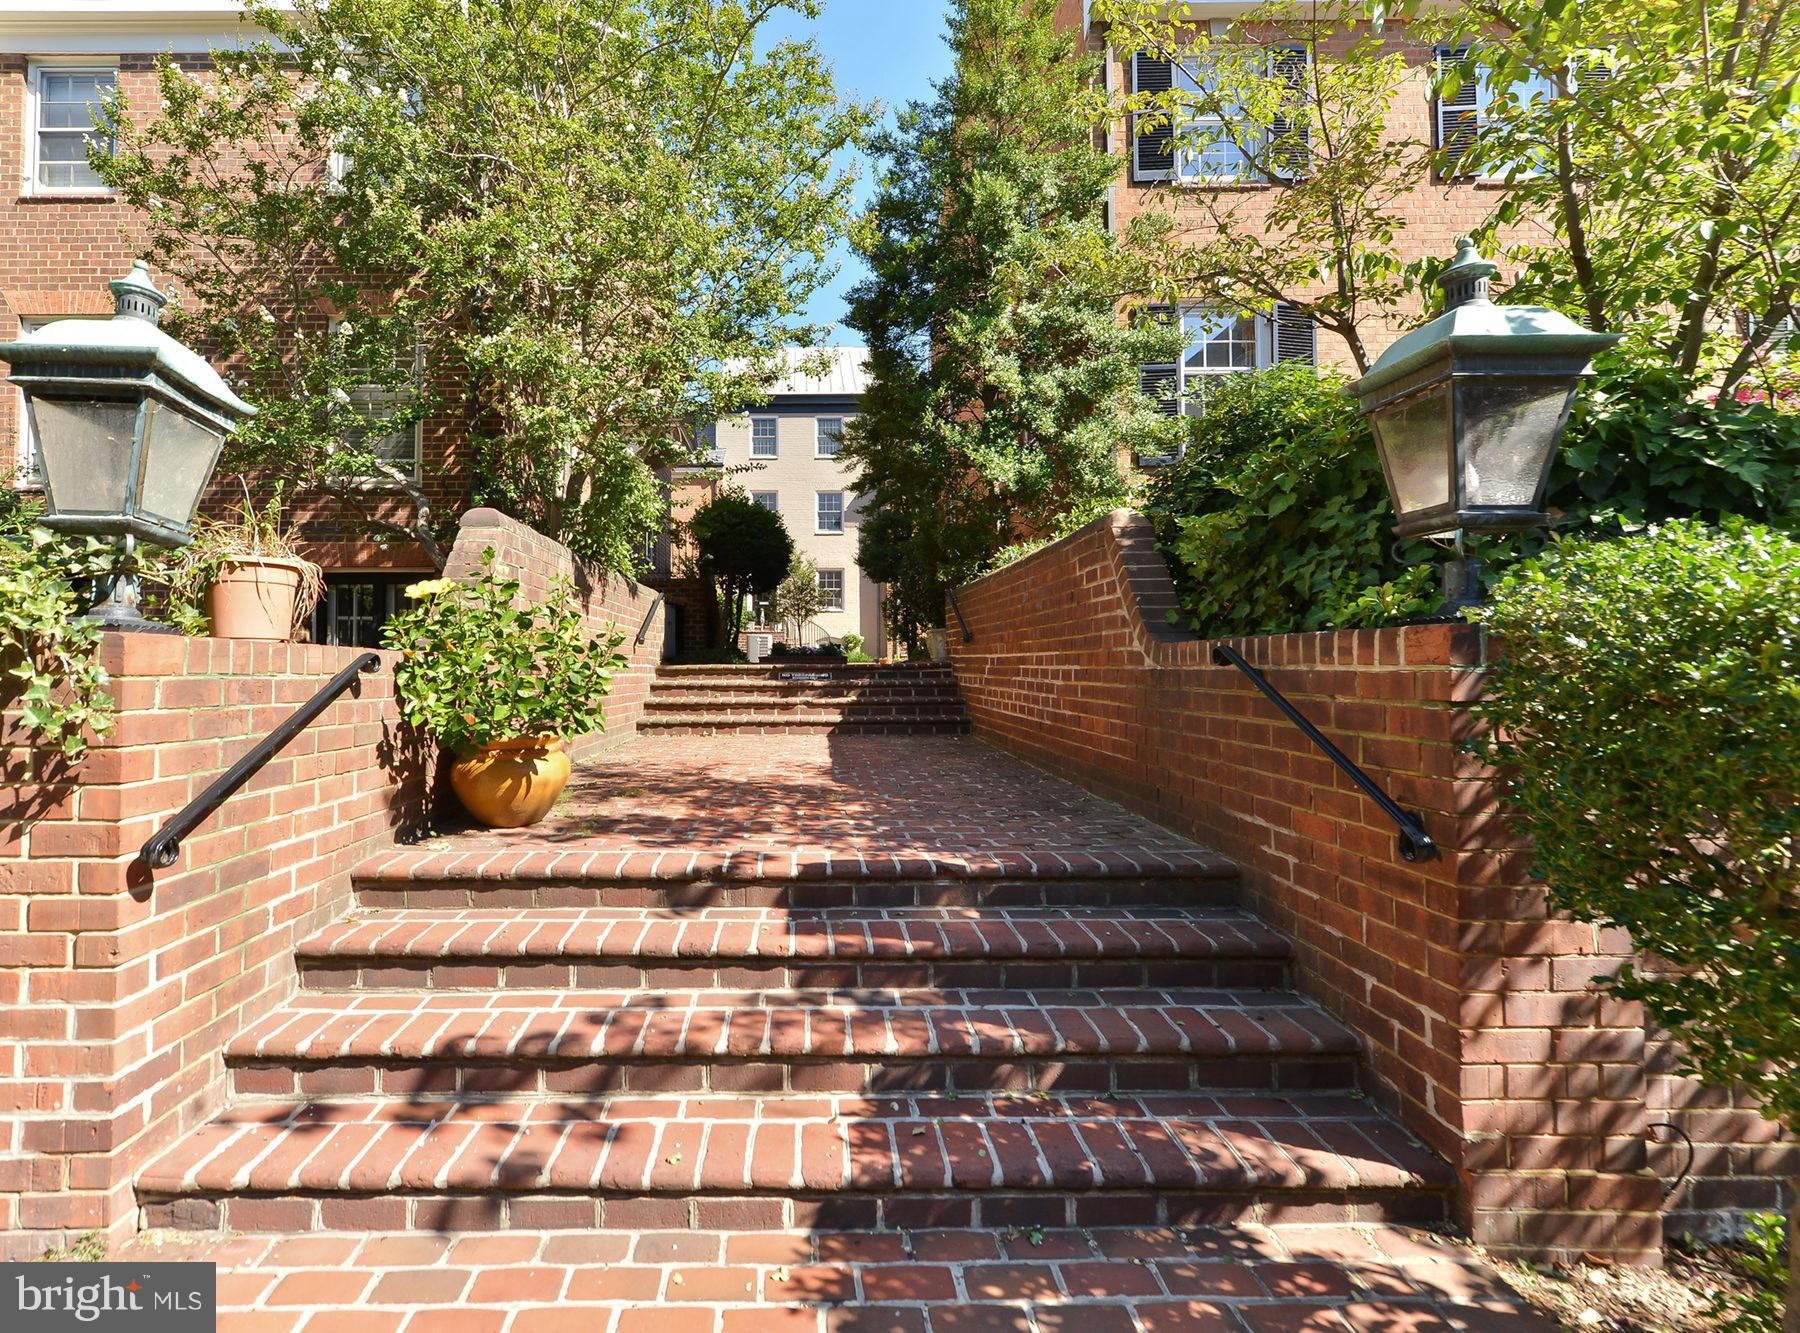 A Private Mews (small enclave of townhomes),this exceptionally bright END UNIT provides 2,970 elegant square feet, upgraded kitchen with Bosch appliances, elegant appointments, two newly lined fireplaces, large walled garden/patio.  Steps to shops, grocery, restaurants and transportation.  Off-street parking!